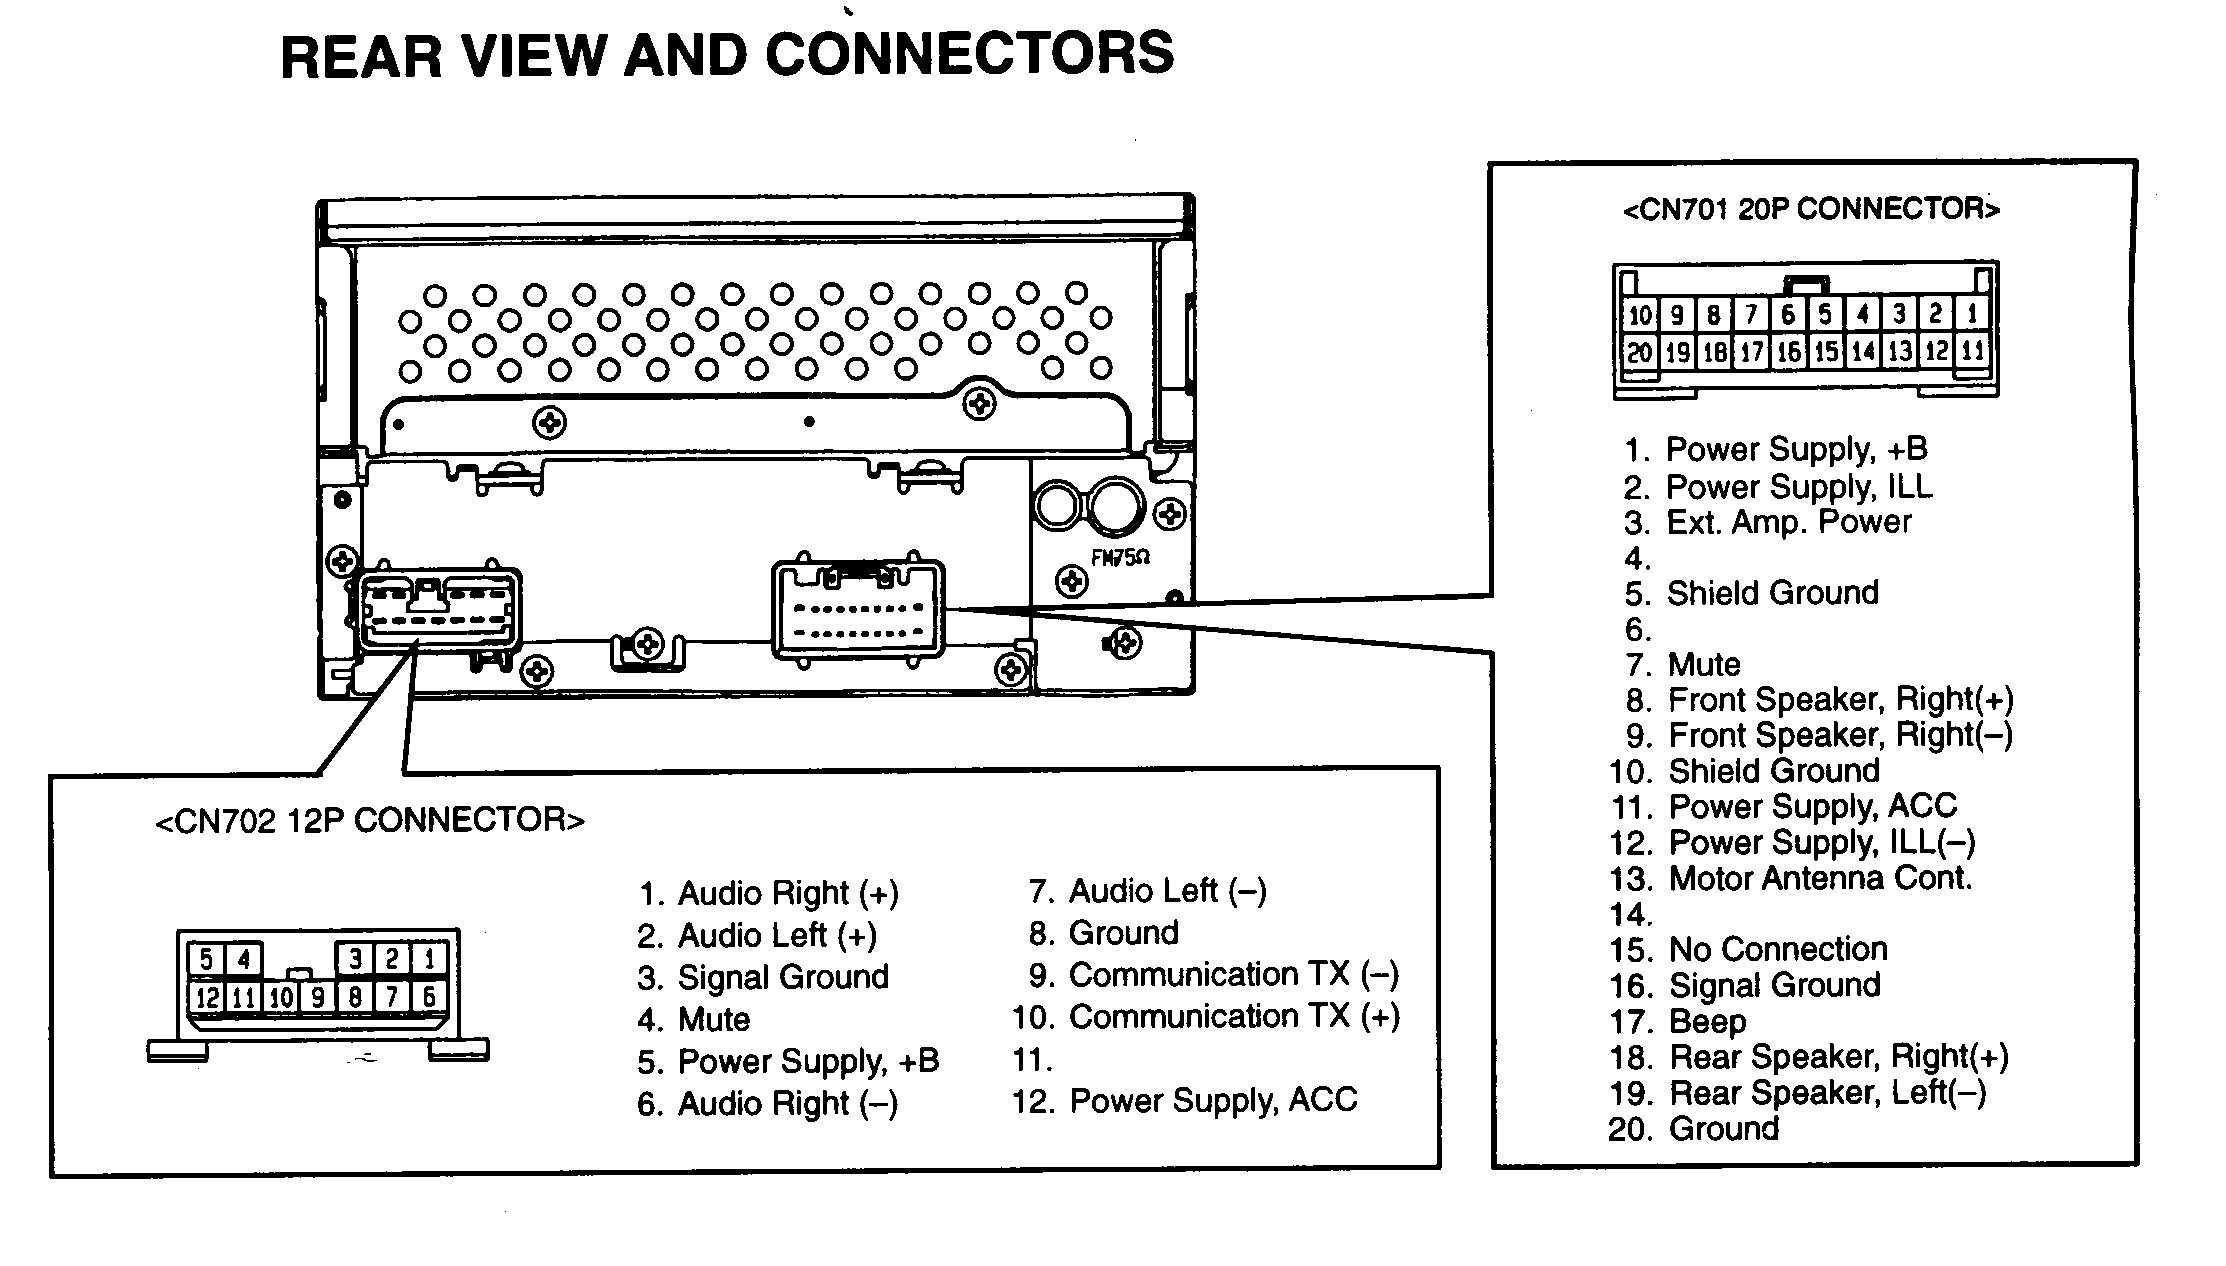 Unique Typical Car Stereo Wiring Diagram Diagram Diagramtemplate Diagramsample Check More At Https Servisi Co Electrical Wiring Diagram Car Stereo Diagram